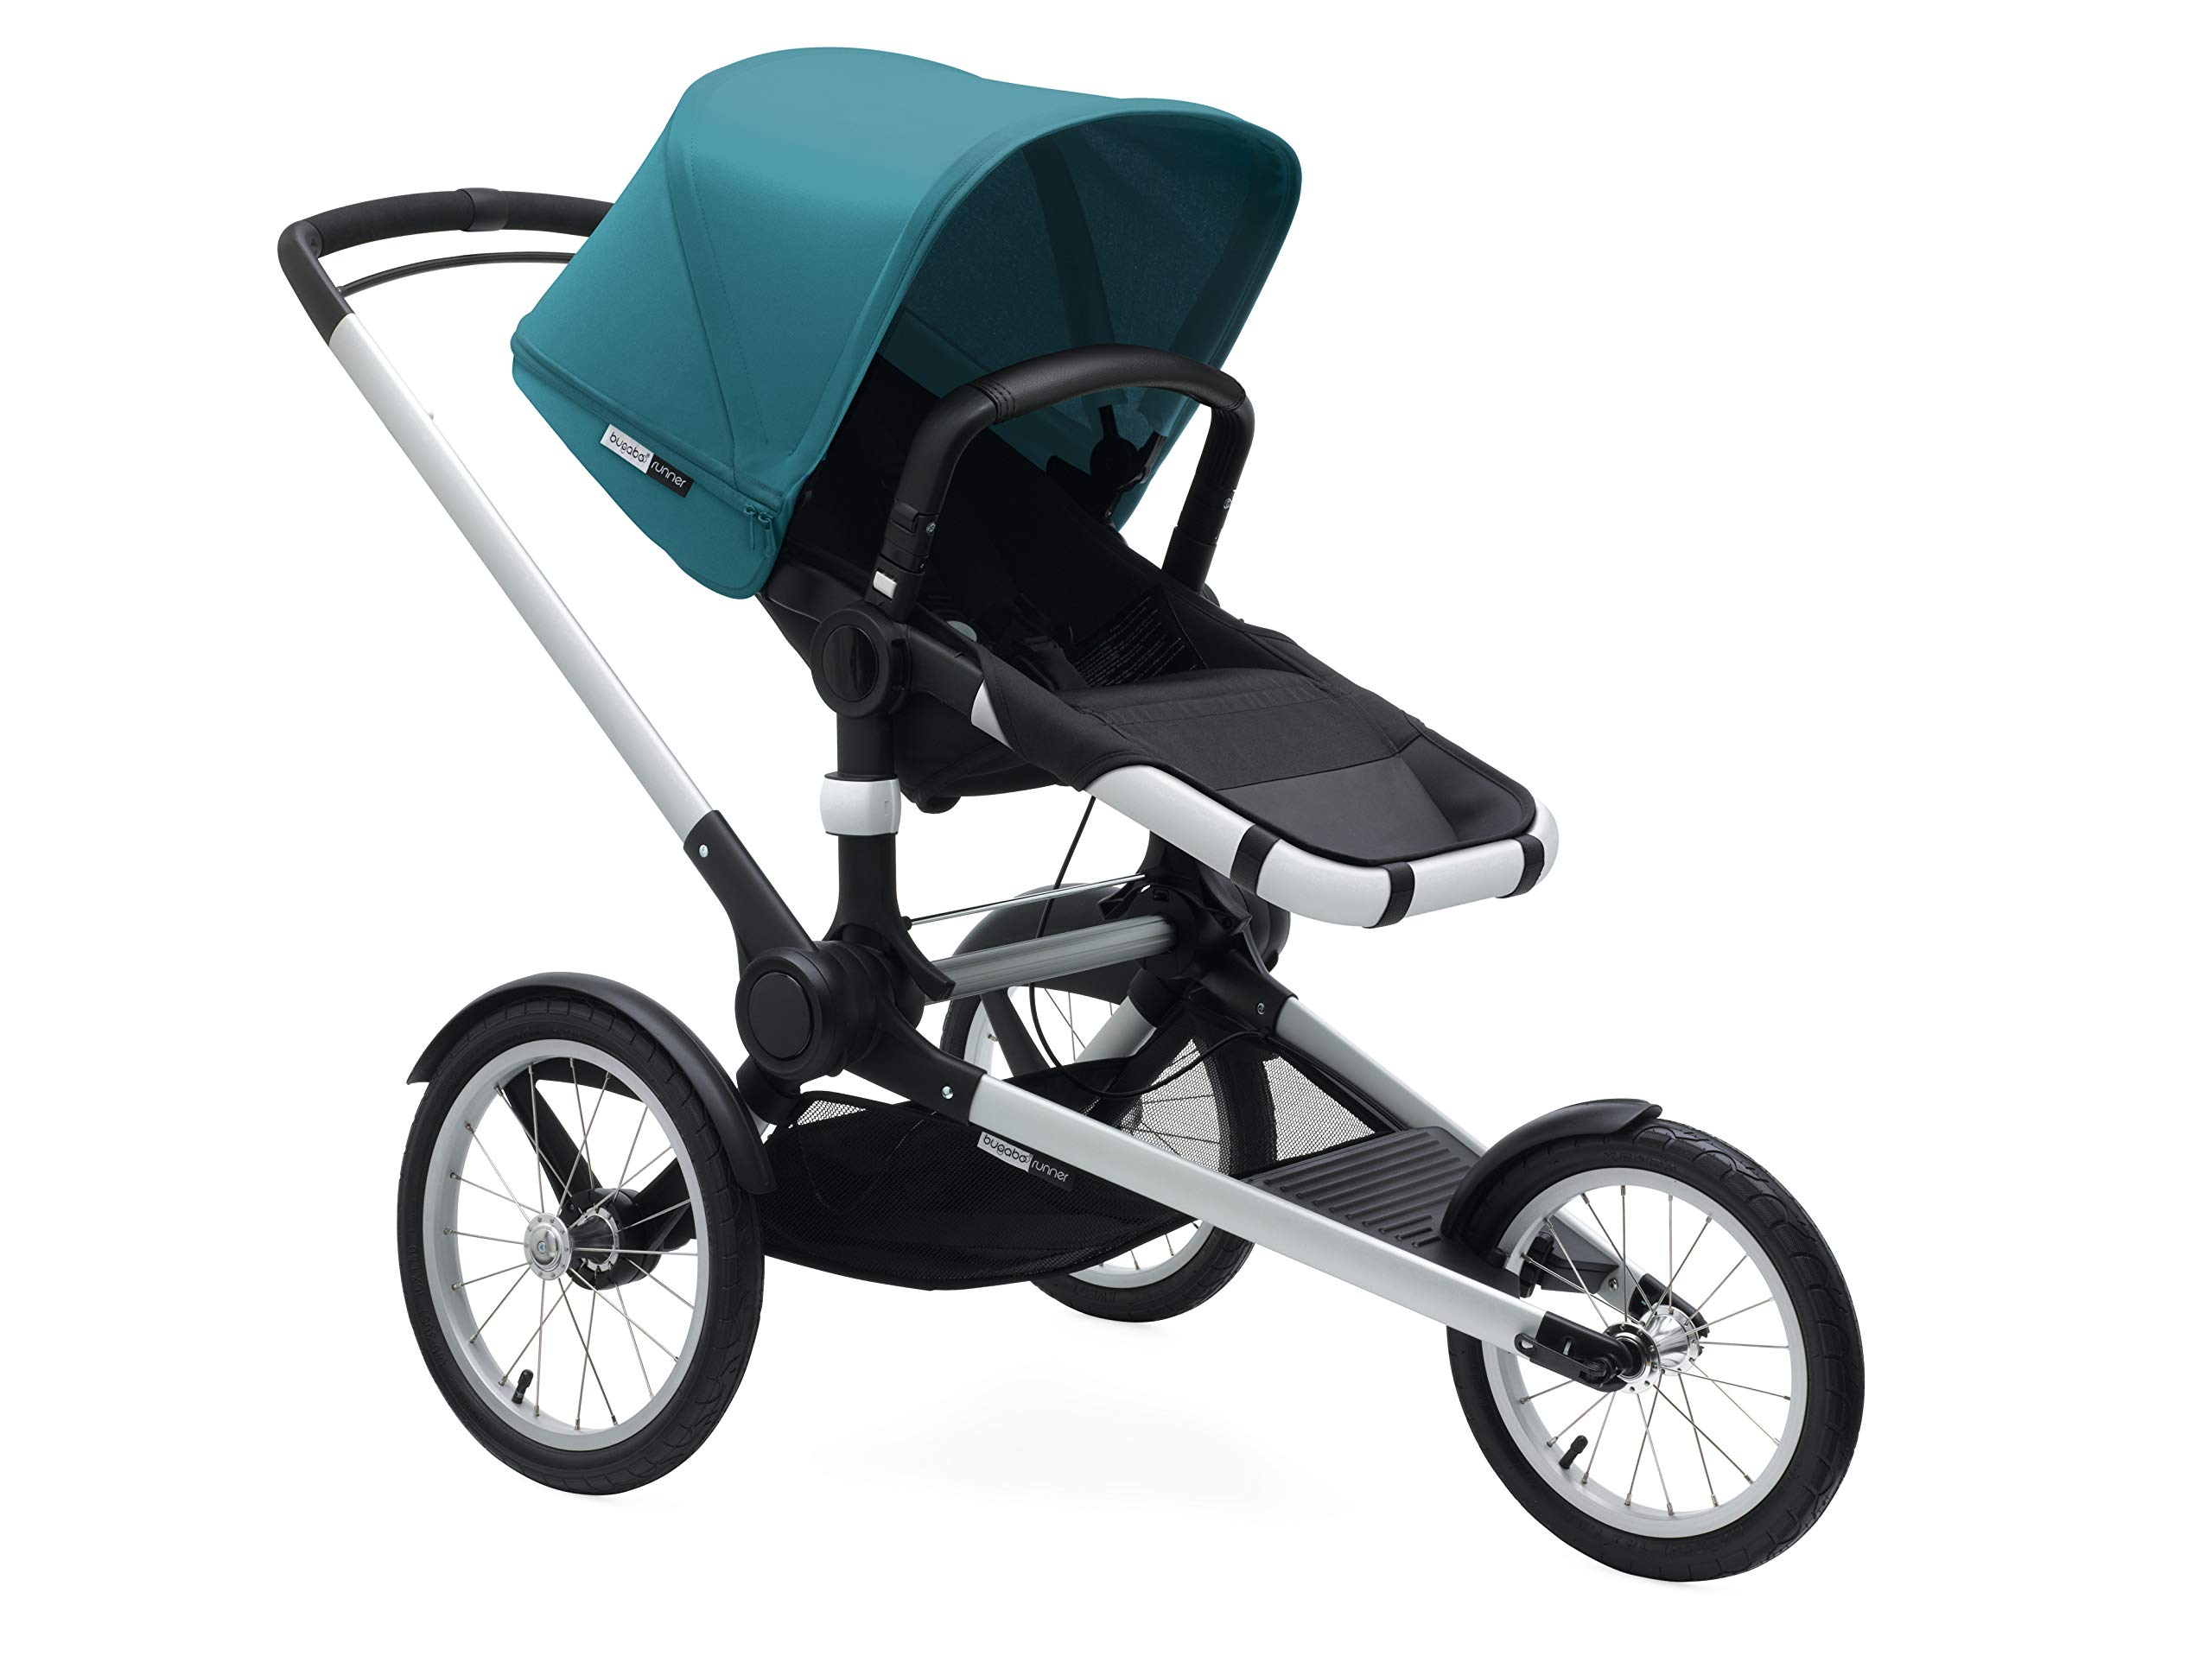 Bugaboo Runner Complete Pushchair, Black/Petrol Blue Bugaboo  1